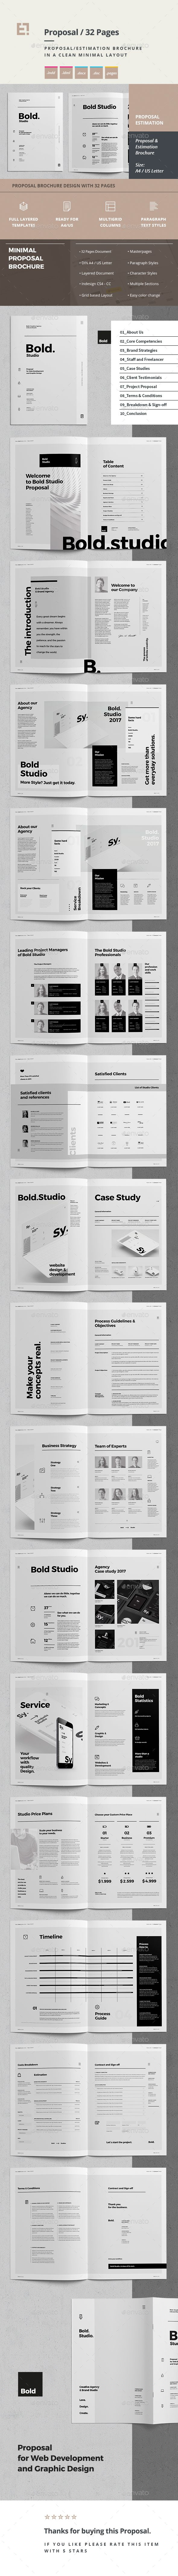 Proposal — InDesign INDD #proposal #trendy • Available here ➝ https://graphicriver.net/item/proposal/20668785?ref=pxcr